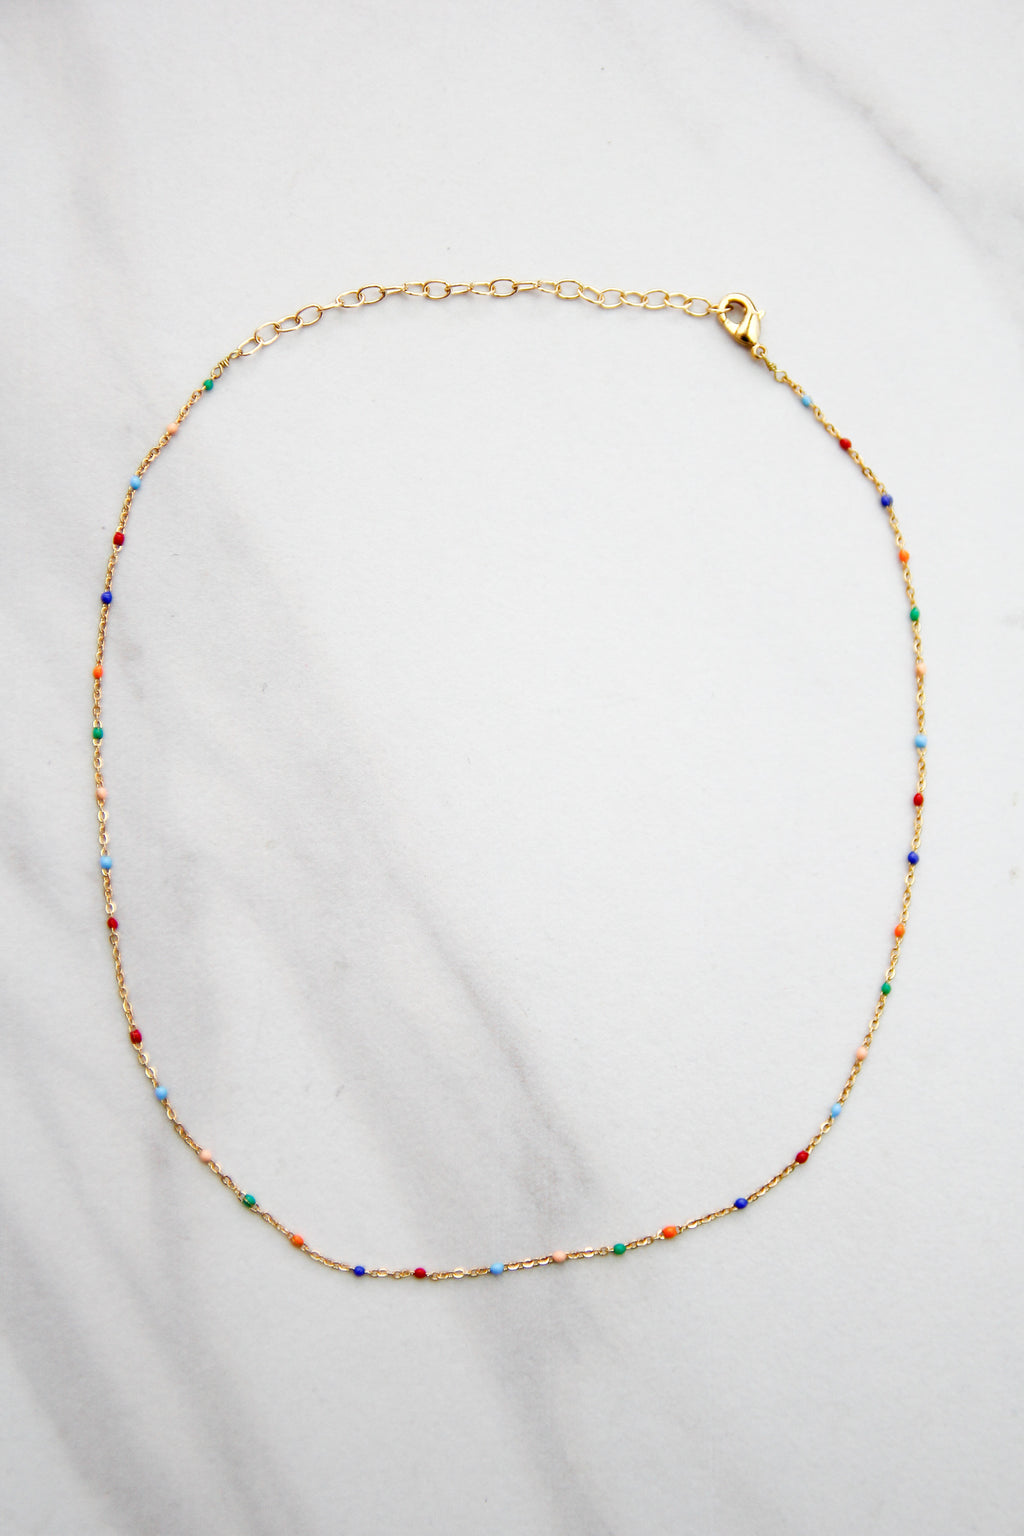 Delicate Situation Choker - Multi